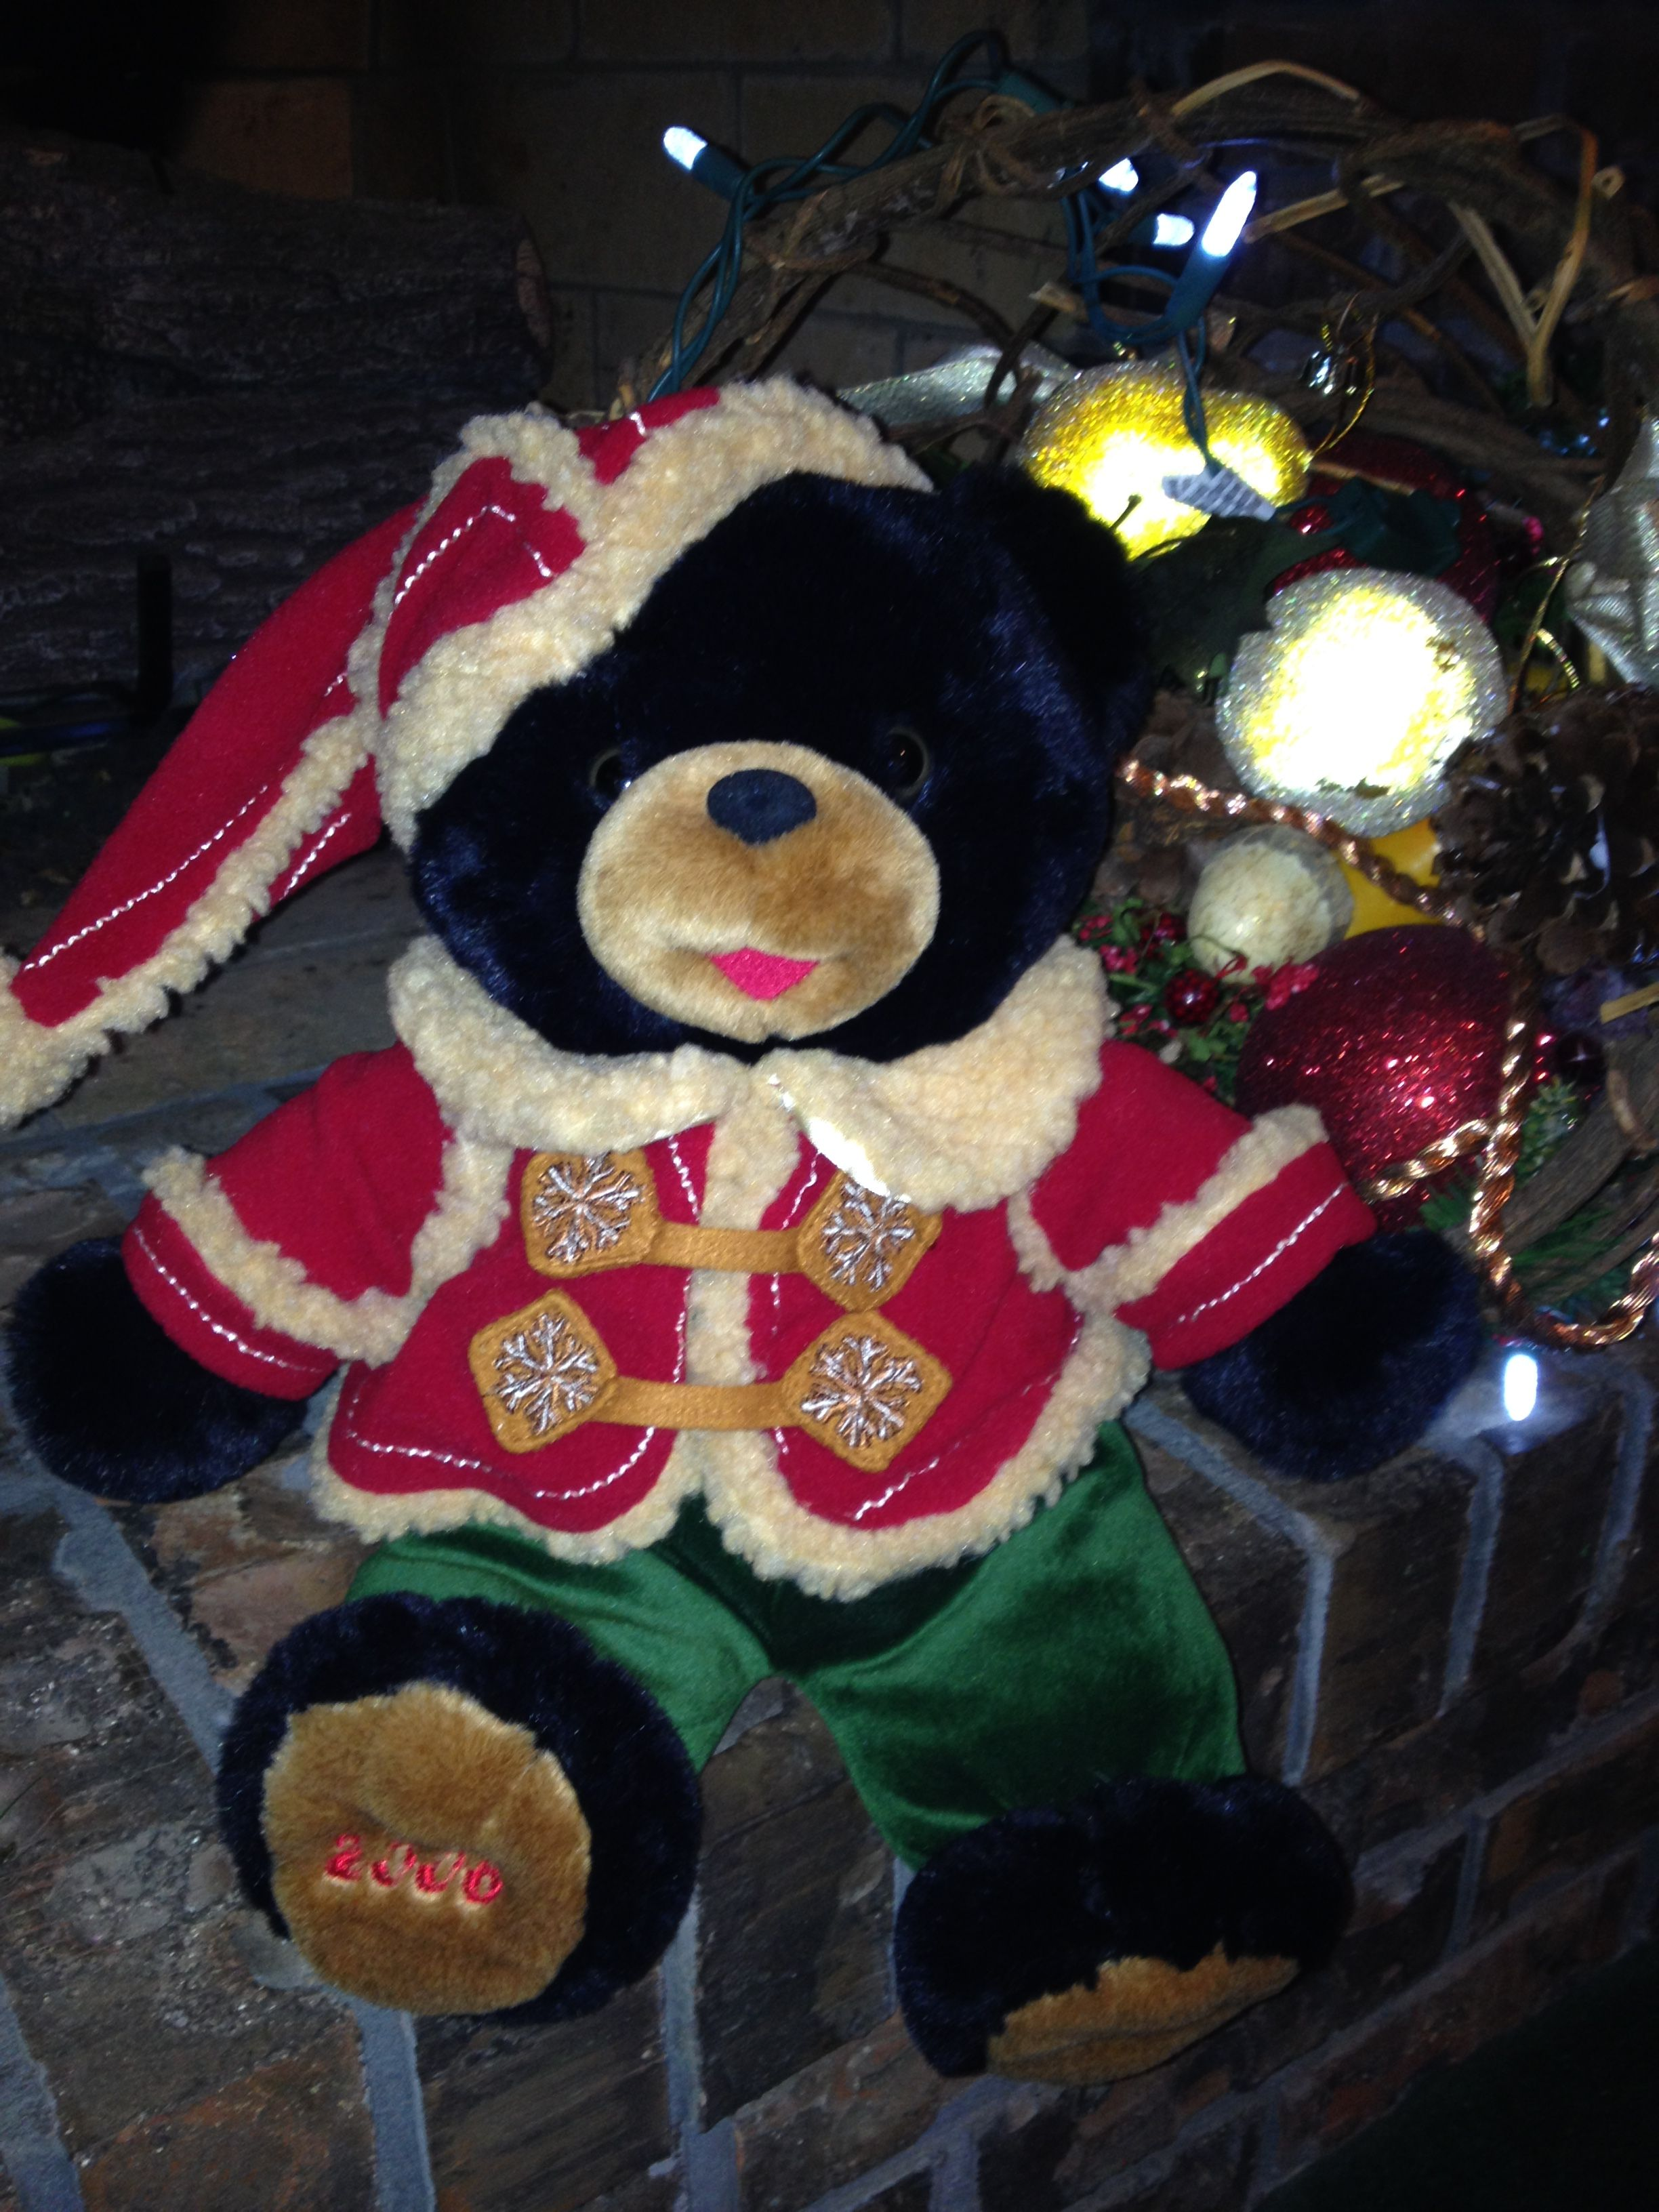 2006 DanDee Walmart Snowflake Teddy Black Bear (With